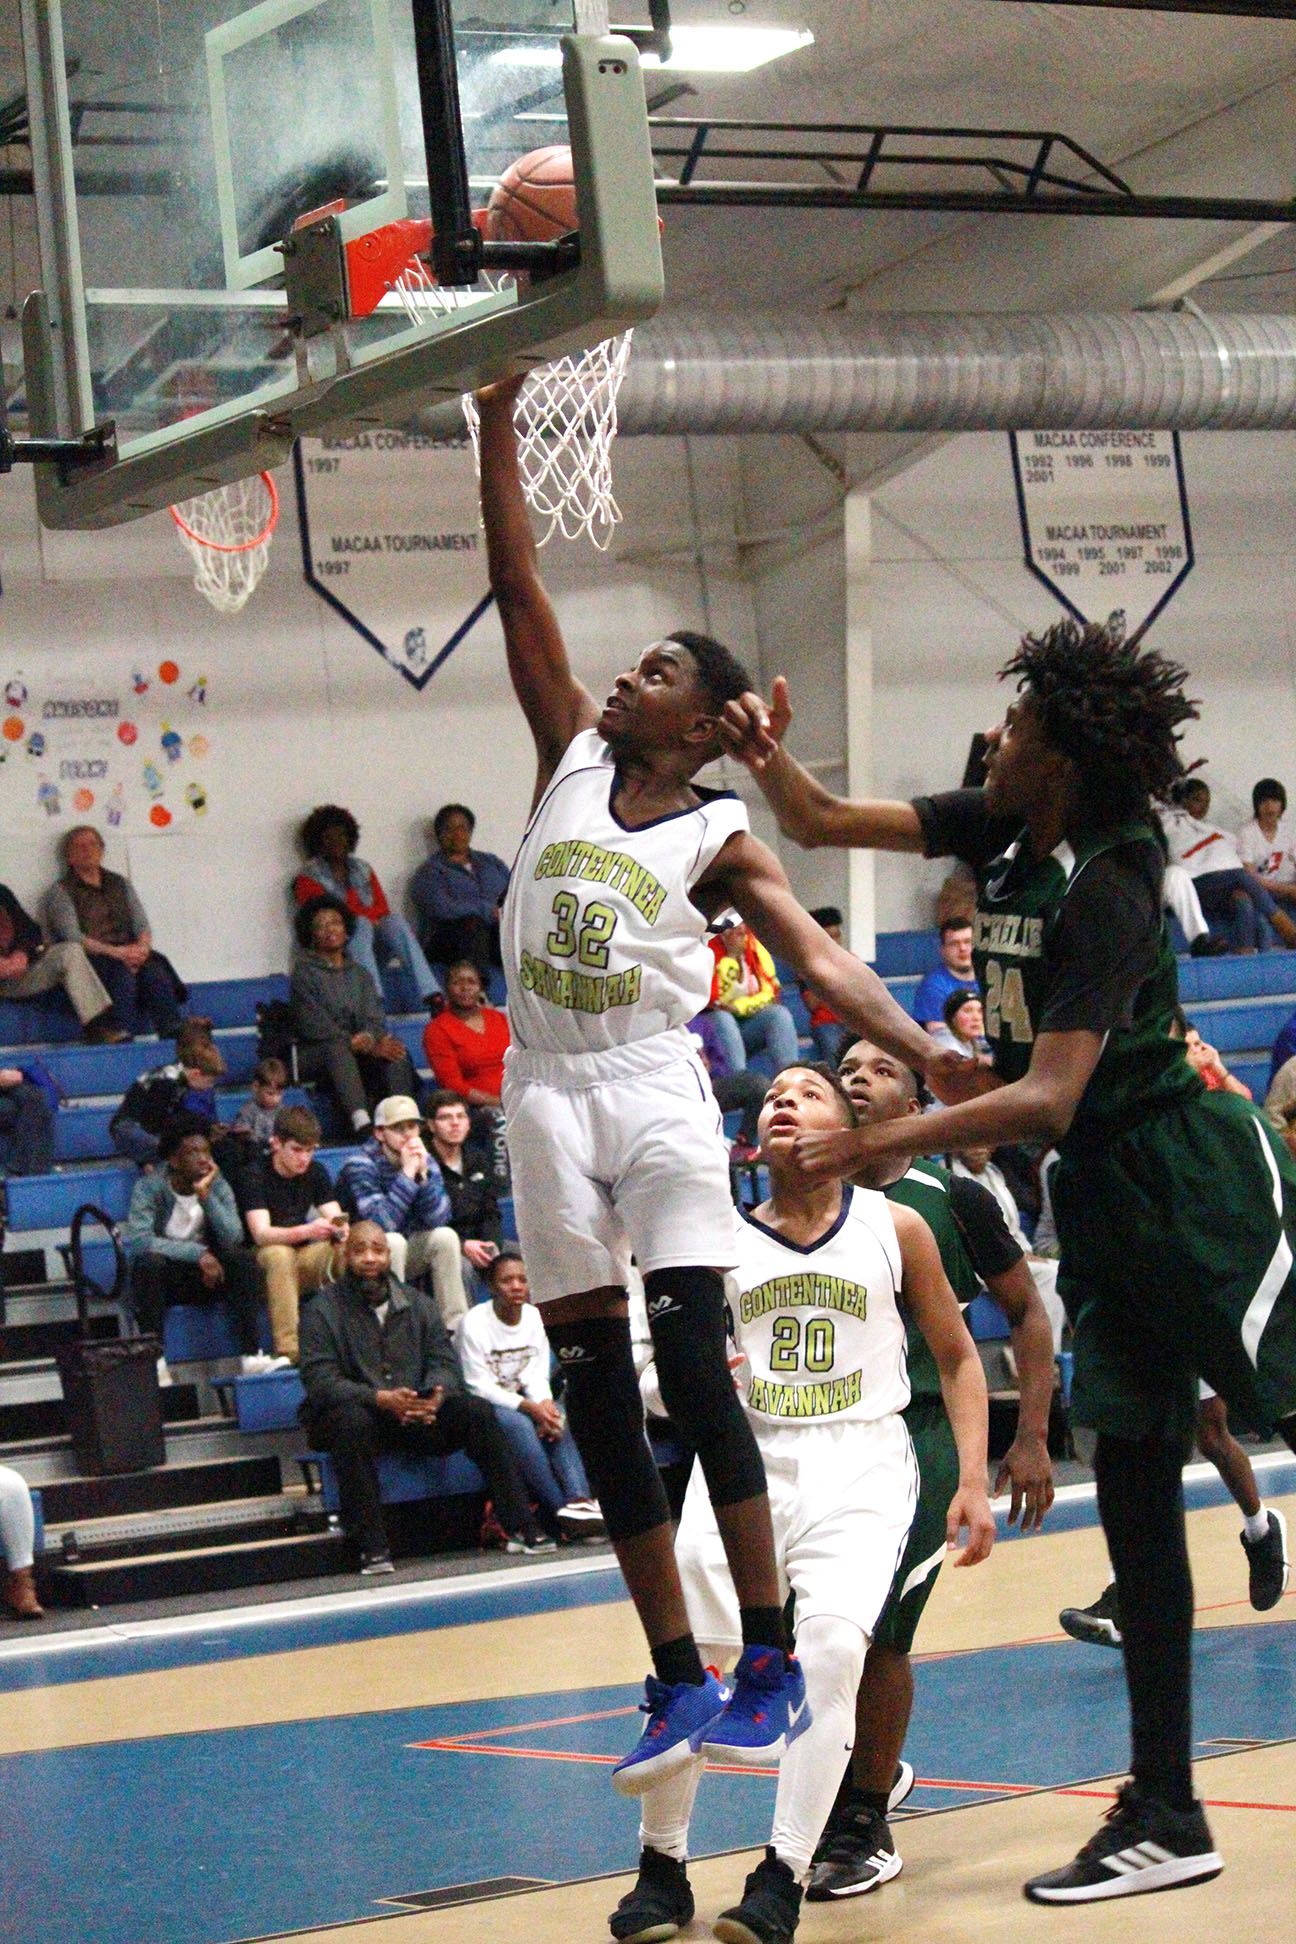 Contentnea-Savannah School's Tre'Shad Lynch rises high for two of his game-high 13 points in the boys' championship game. Photo by Linda Whittington / Neuse News